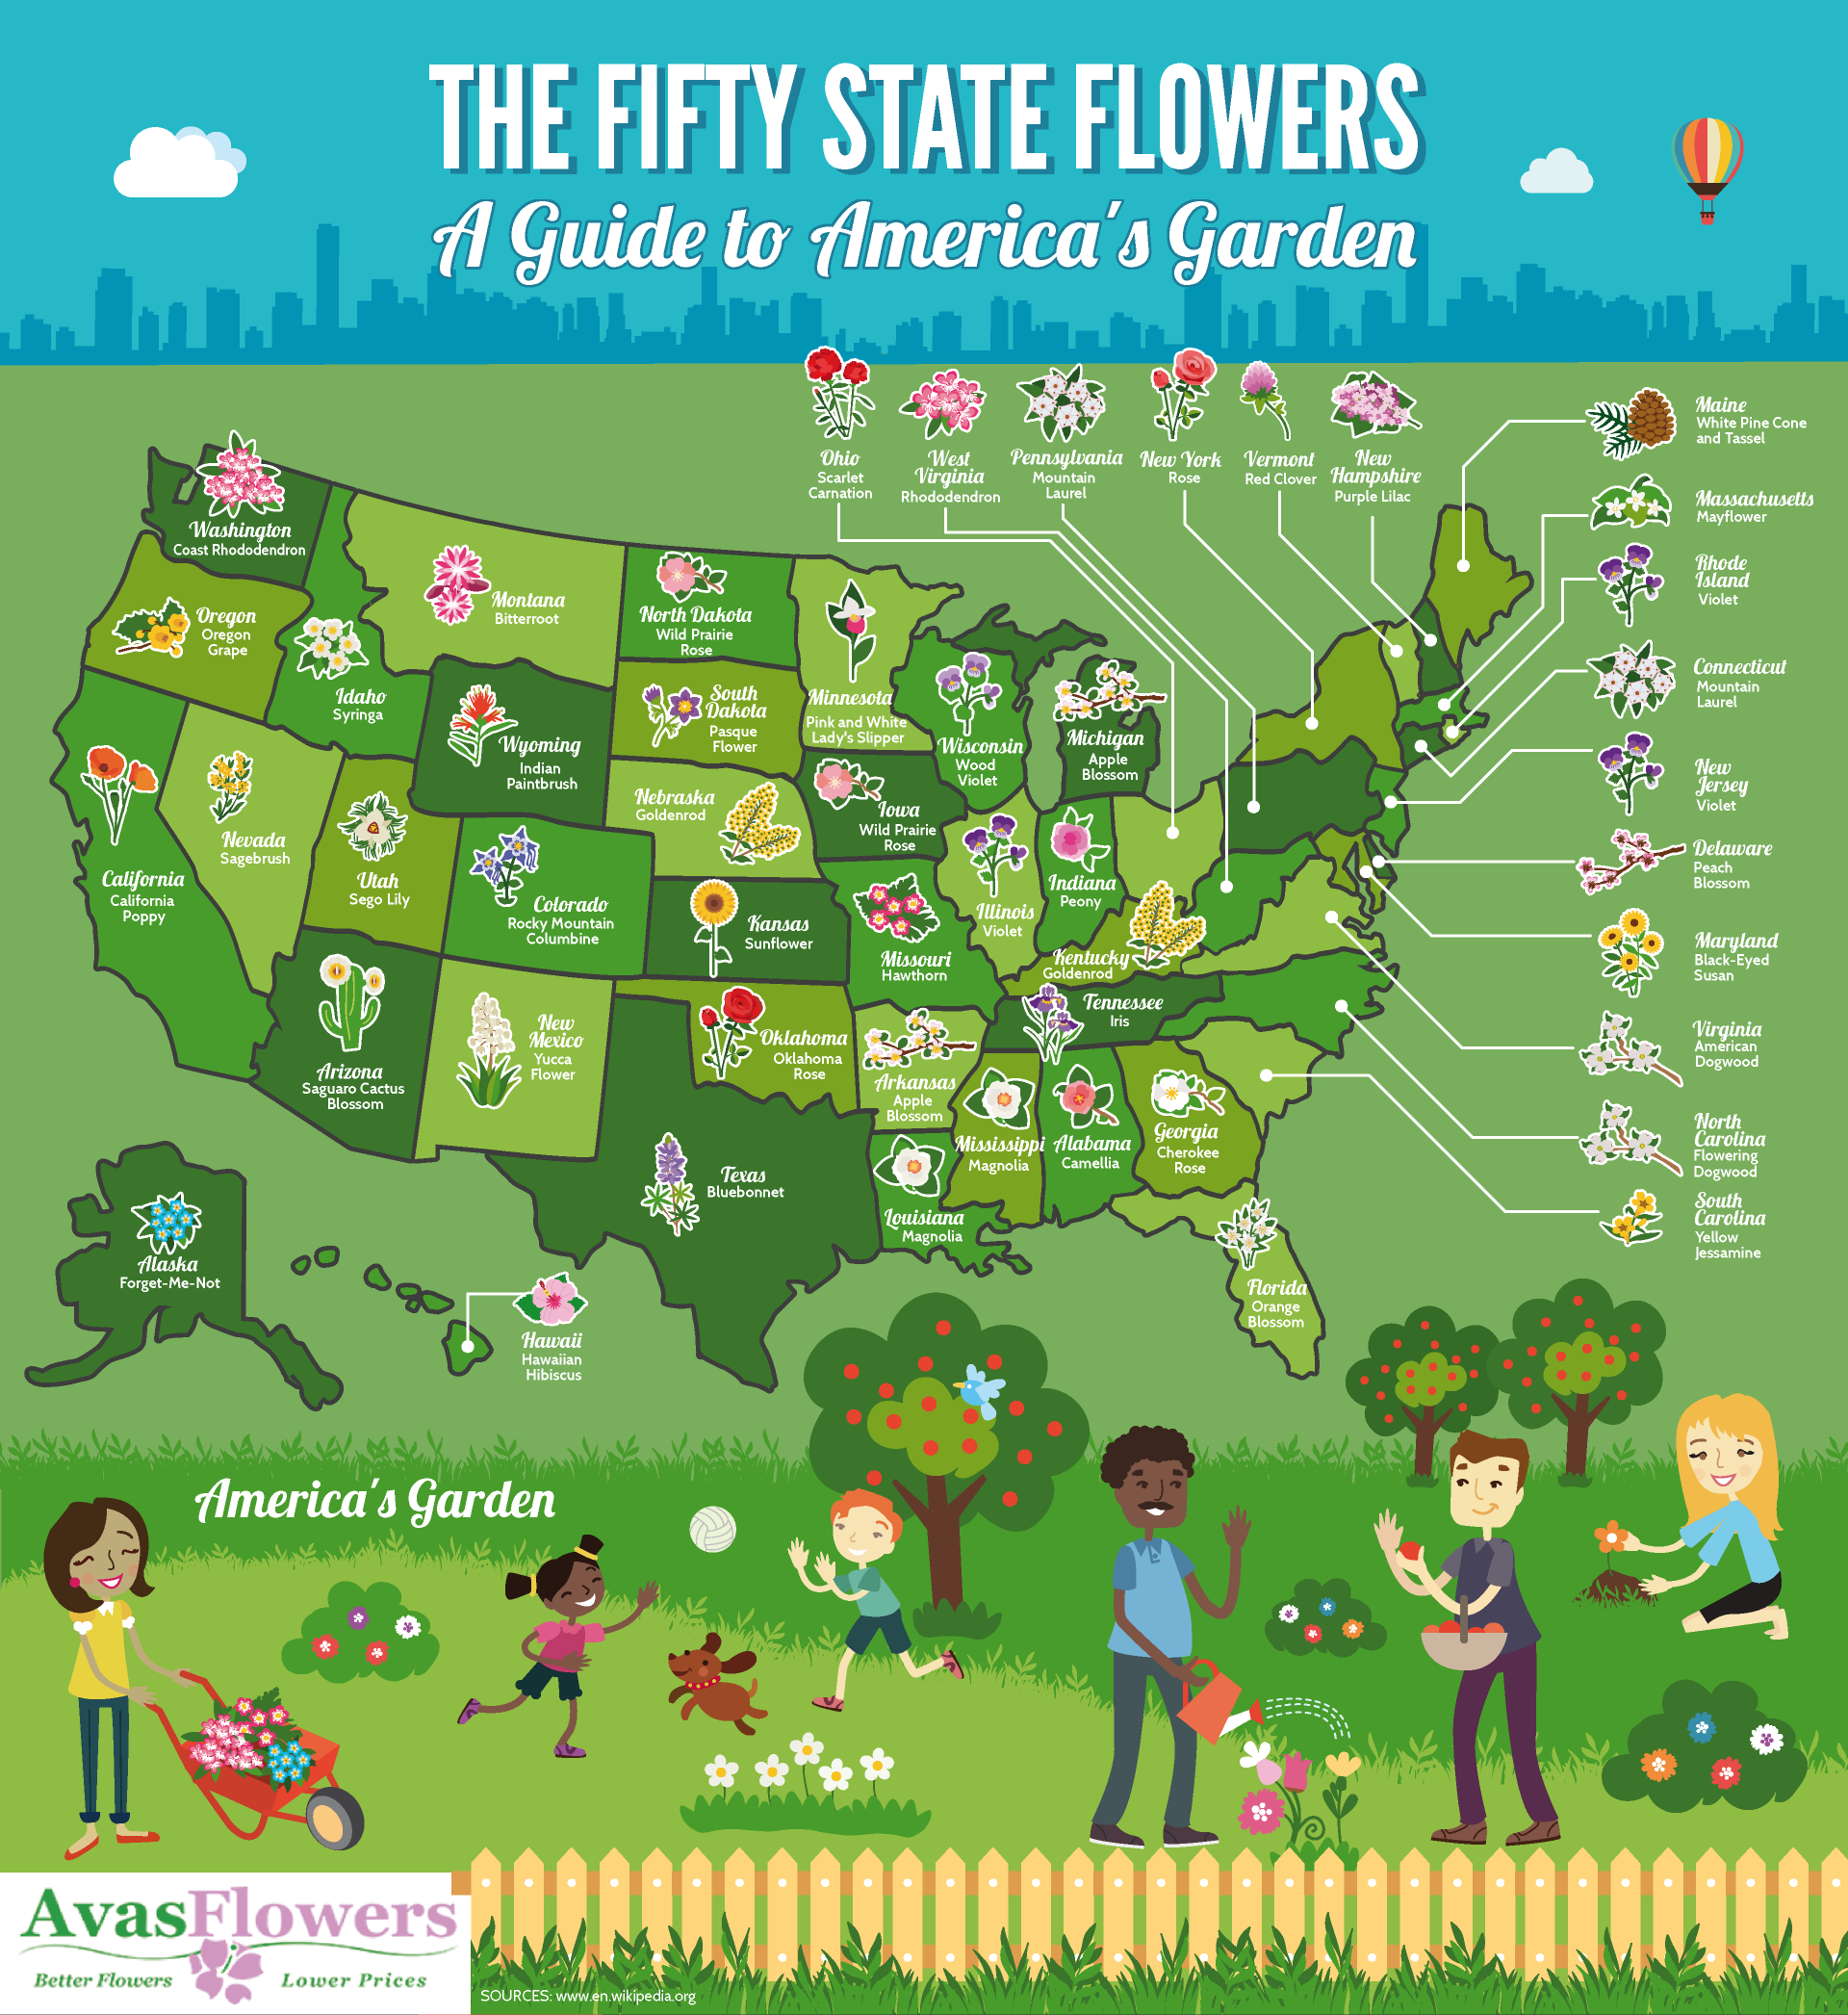 The Fifty State Flowers - Avasflowers.net - Infographic